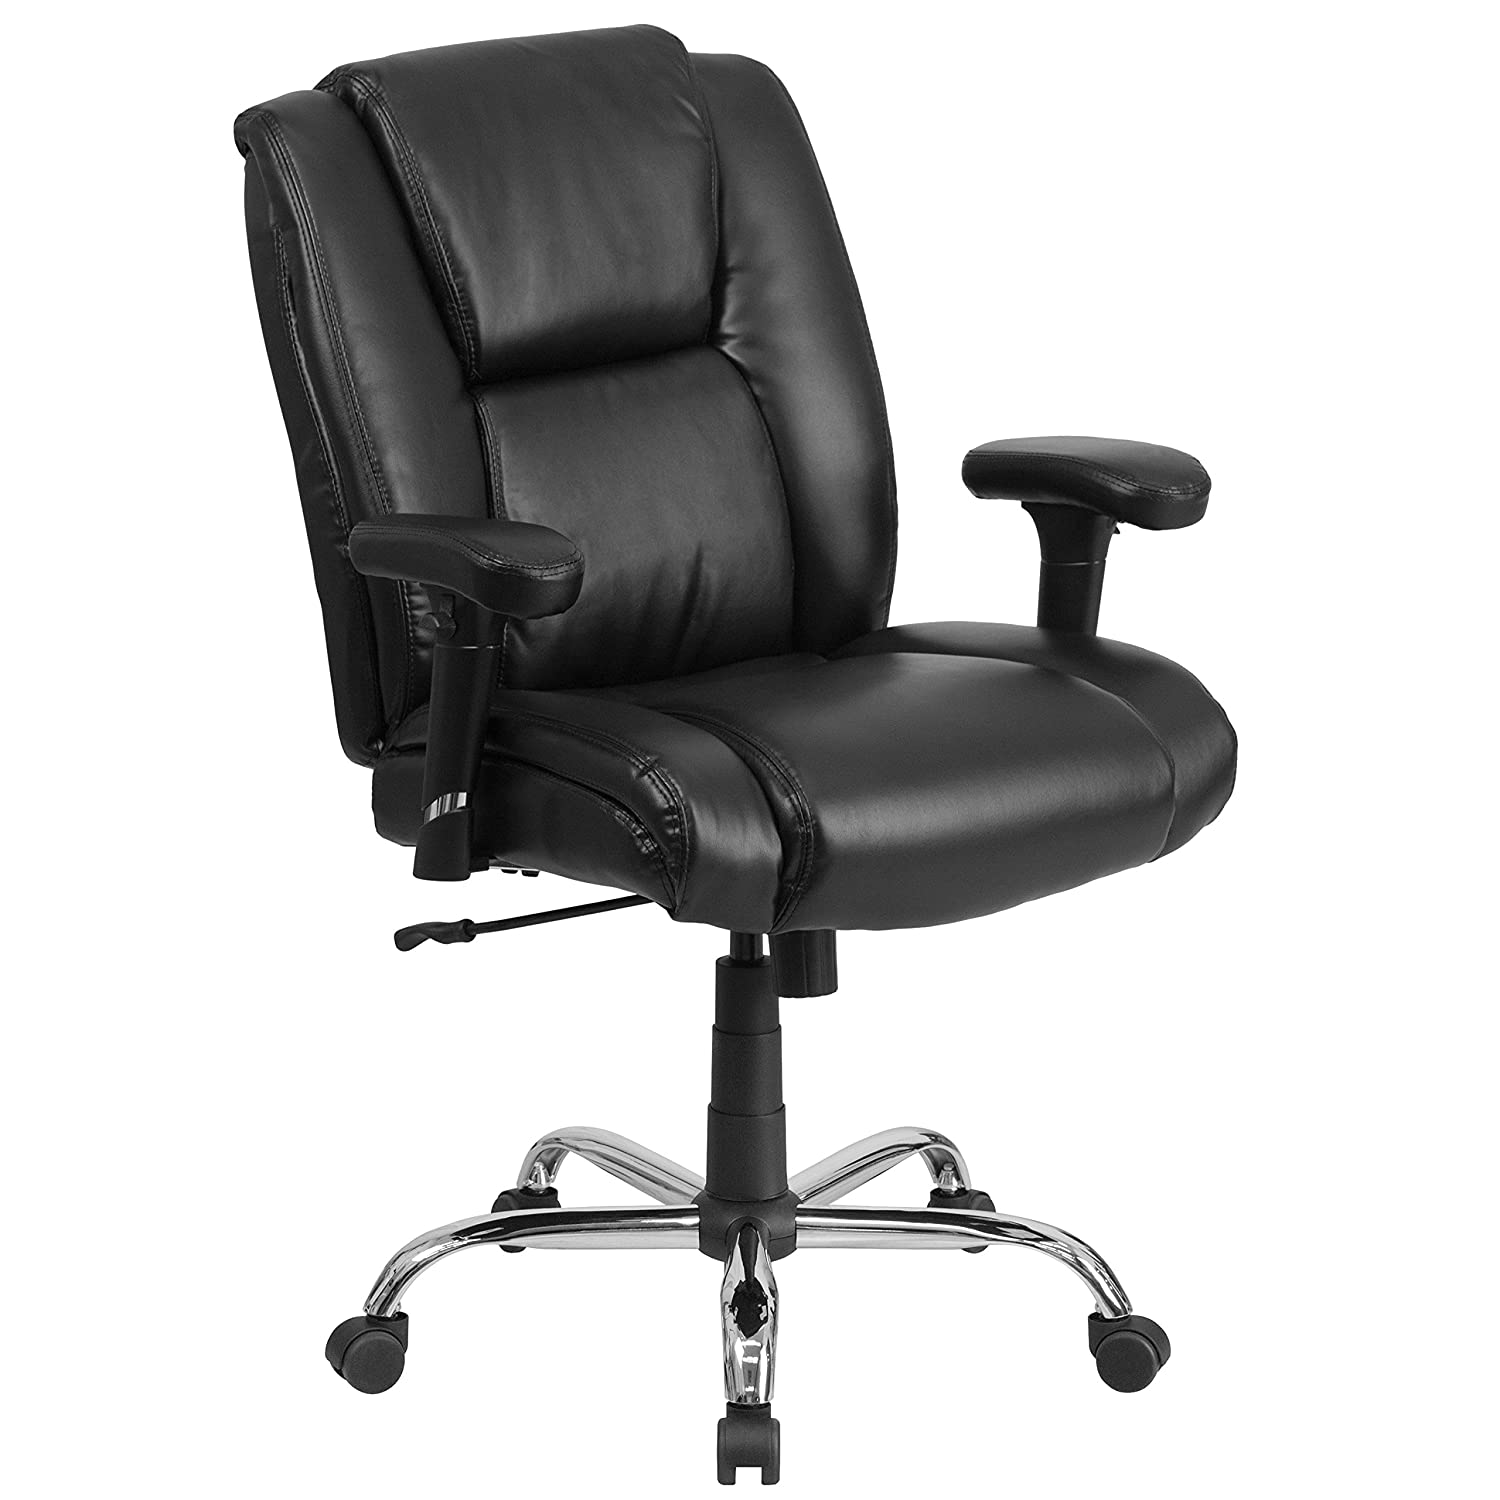 Flash Furniture HERCULES Series Big & Tall 400 lb. Rated Black Leather Ergonomic Task Office Chair with Chrome Base and Adjustable Arms